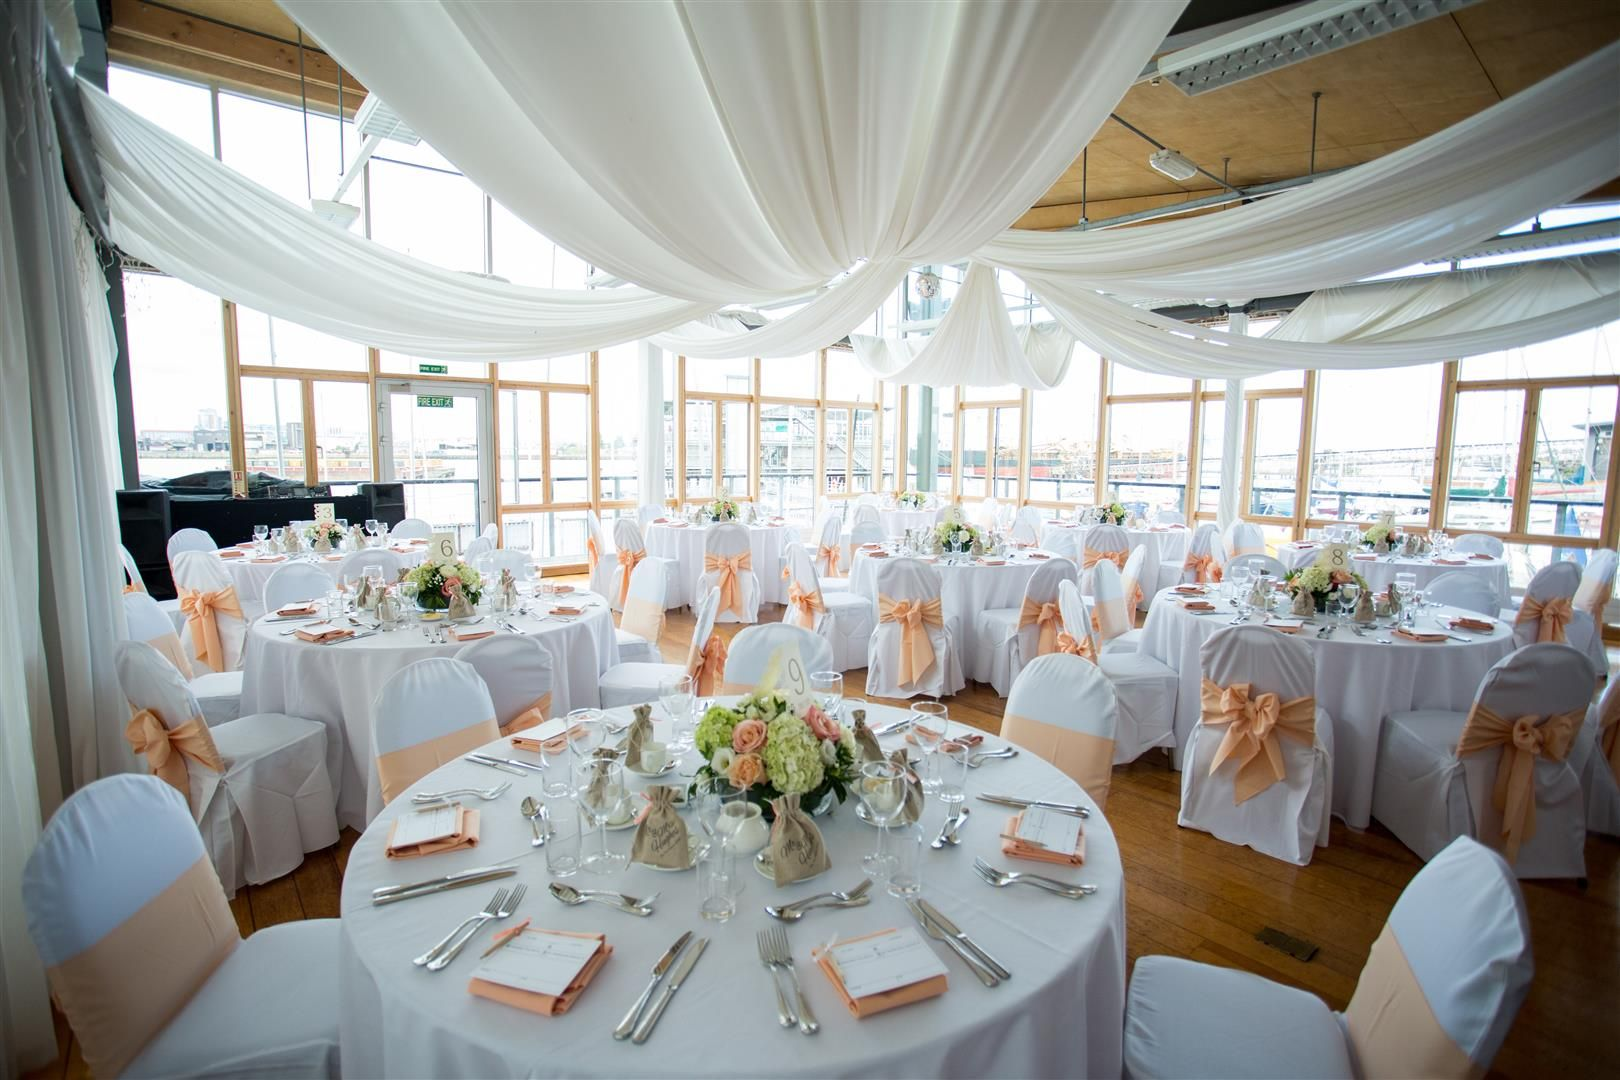 Classy And Elegant London Wedding Venue The River Rooms At Greenwich Yacht Club